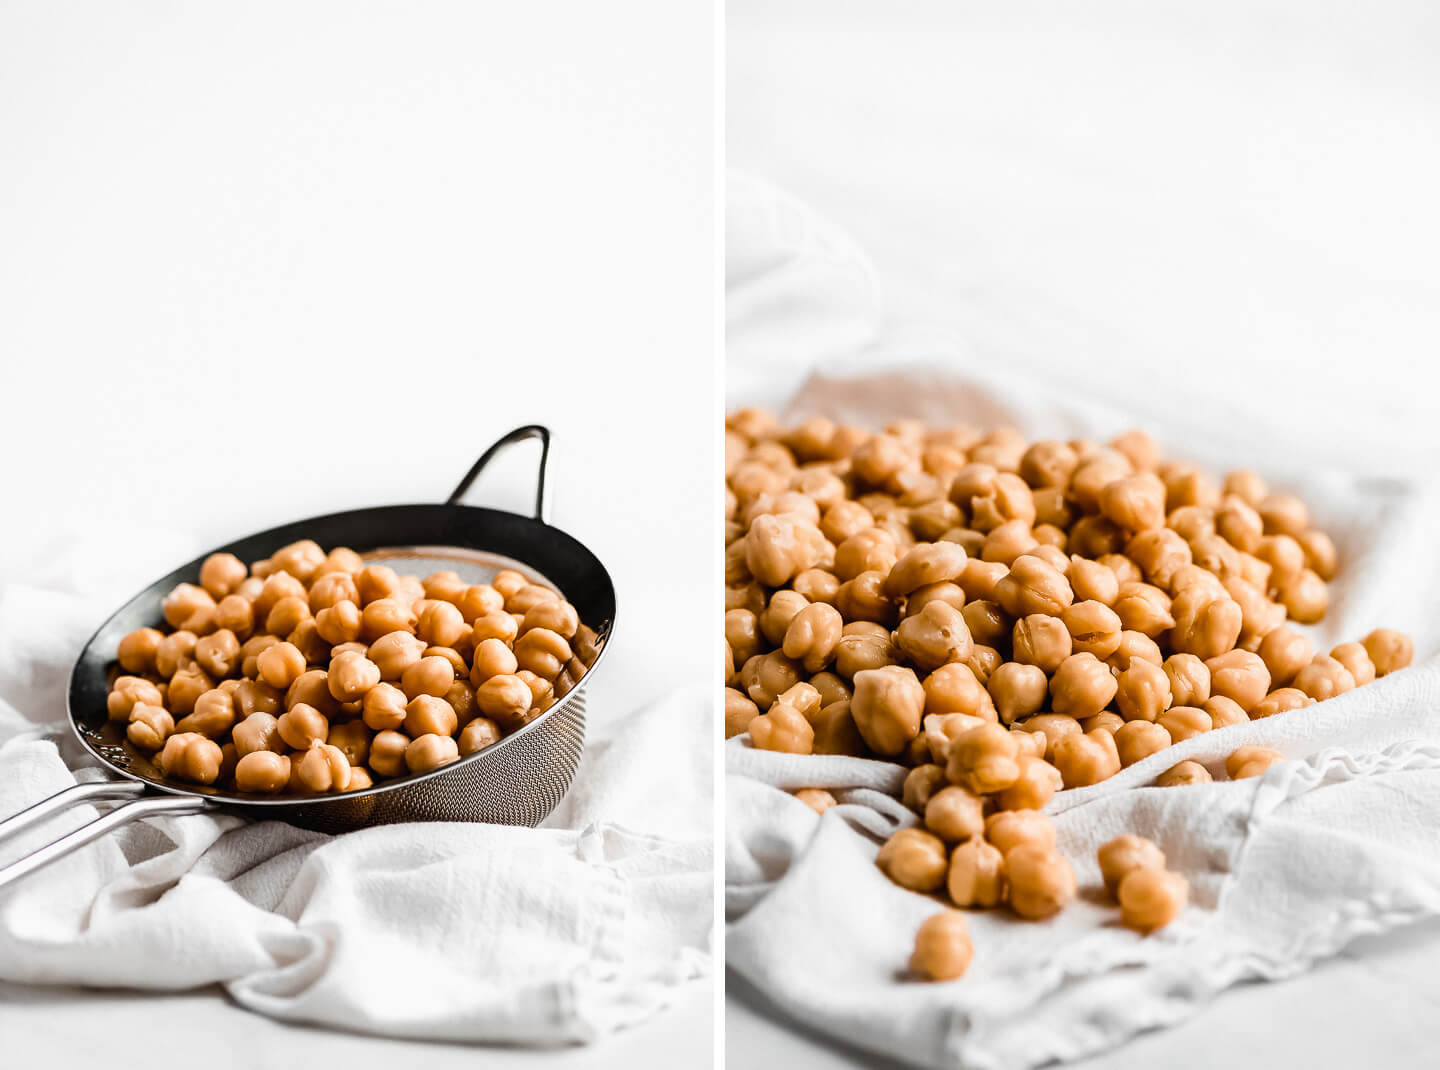 Diptych- Canned chickpeas in a mesh strainer sitting on a white towel. Chickpeas laying on a white kitchen towel to dry.